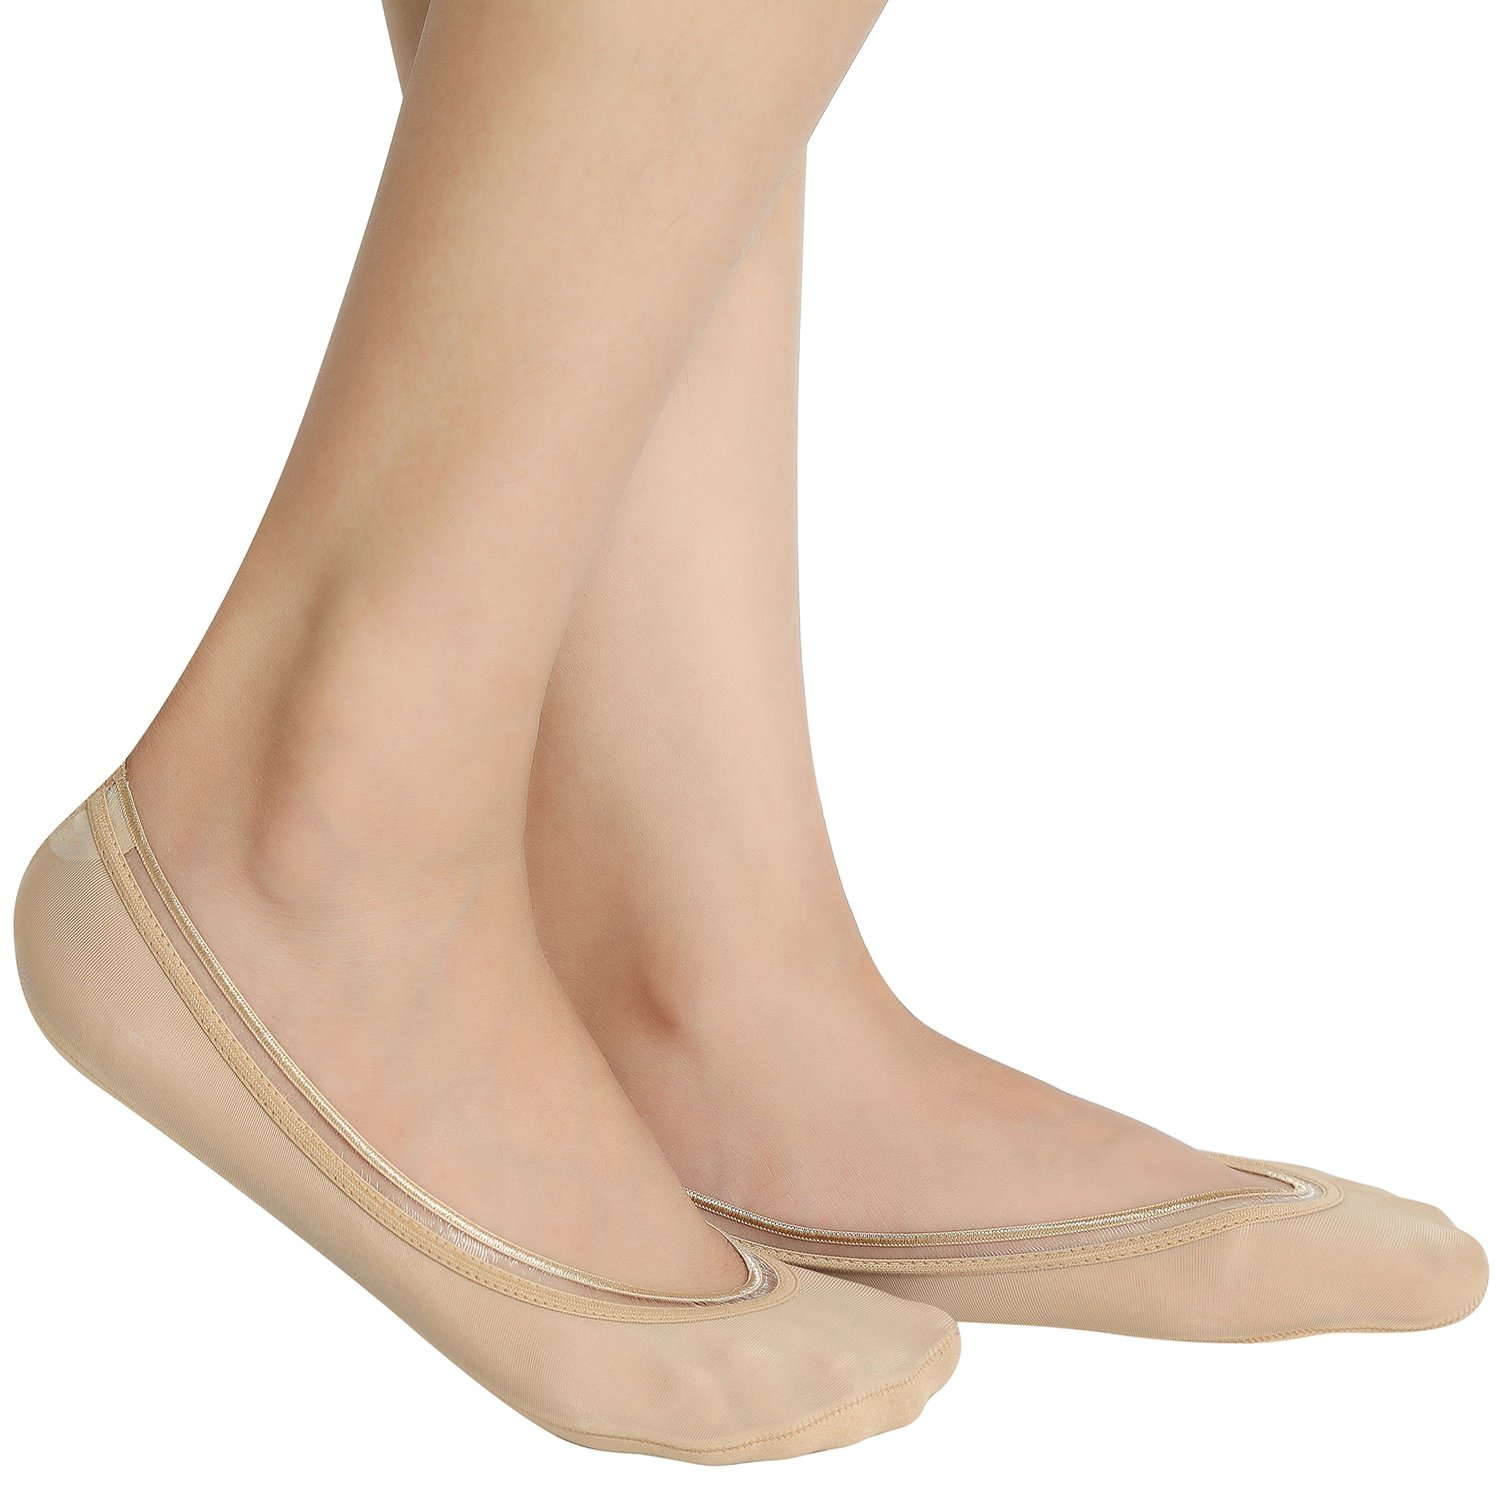 Fitrell Women's No Show Socks Non Slip Thin Casual Flat Invisible Liner Socks (6 Pack),Nude+Black,One Size